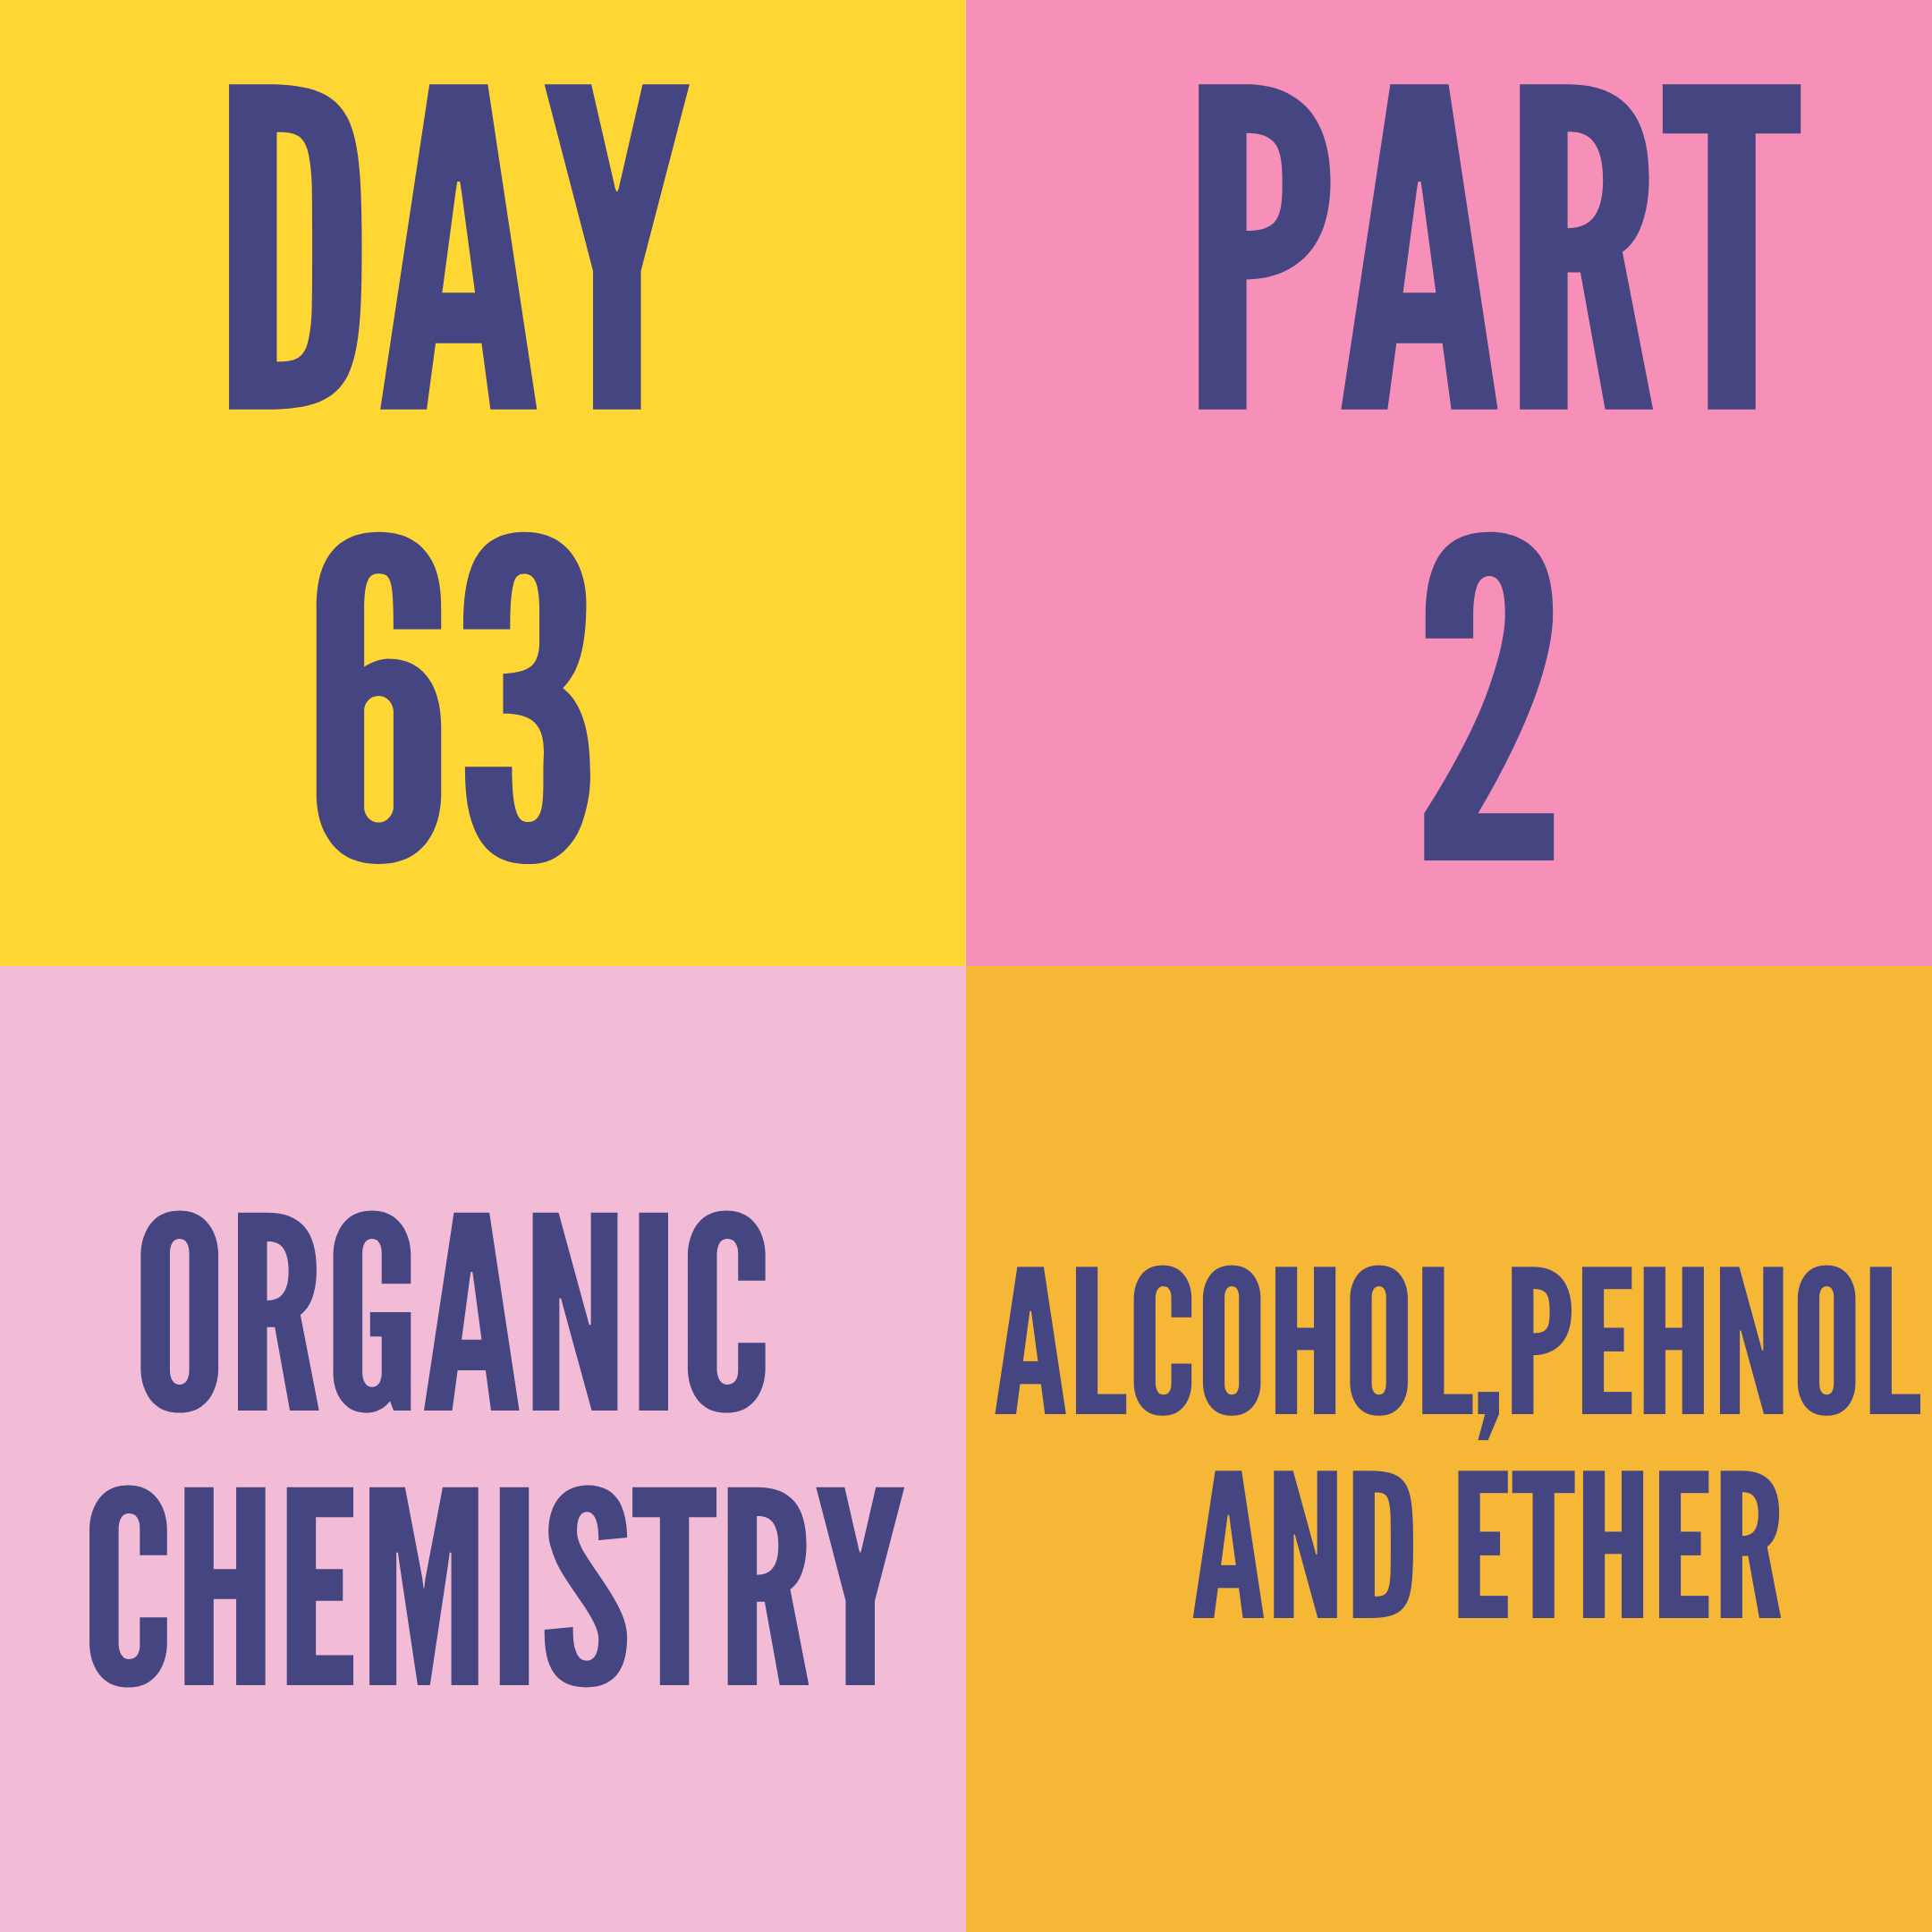 DAY-63 PART-2 ALCOH0L,PEHNOL AND ETHER